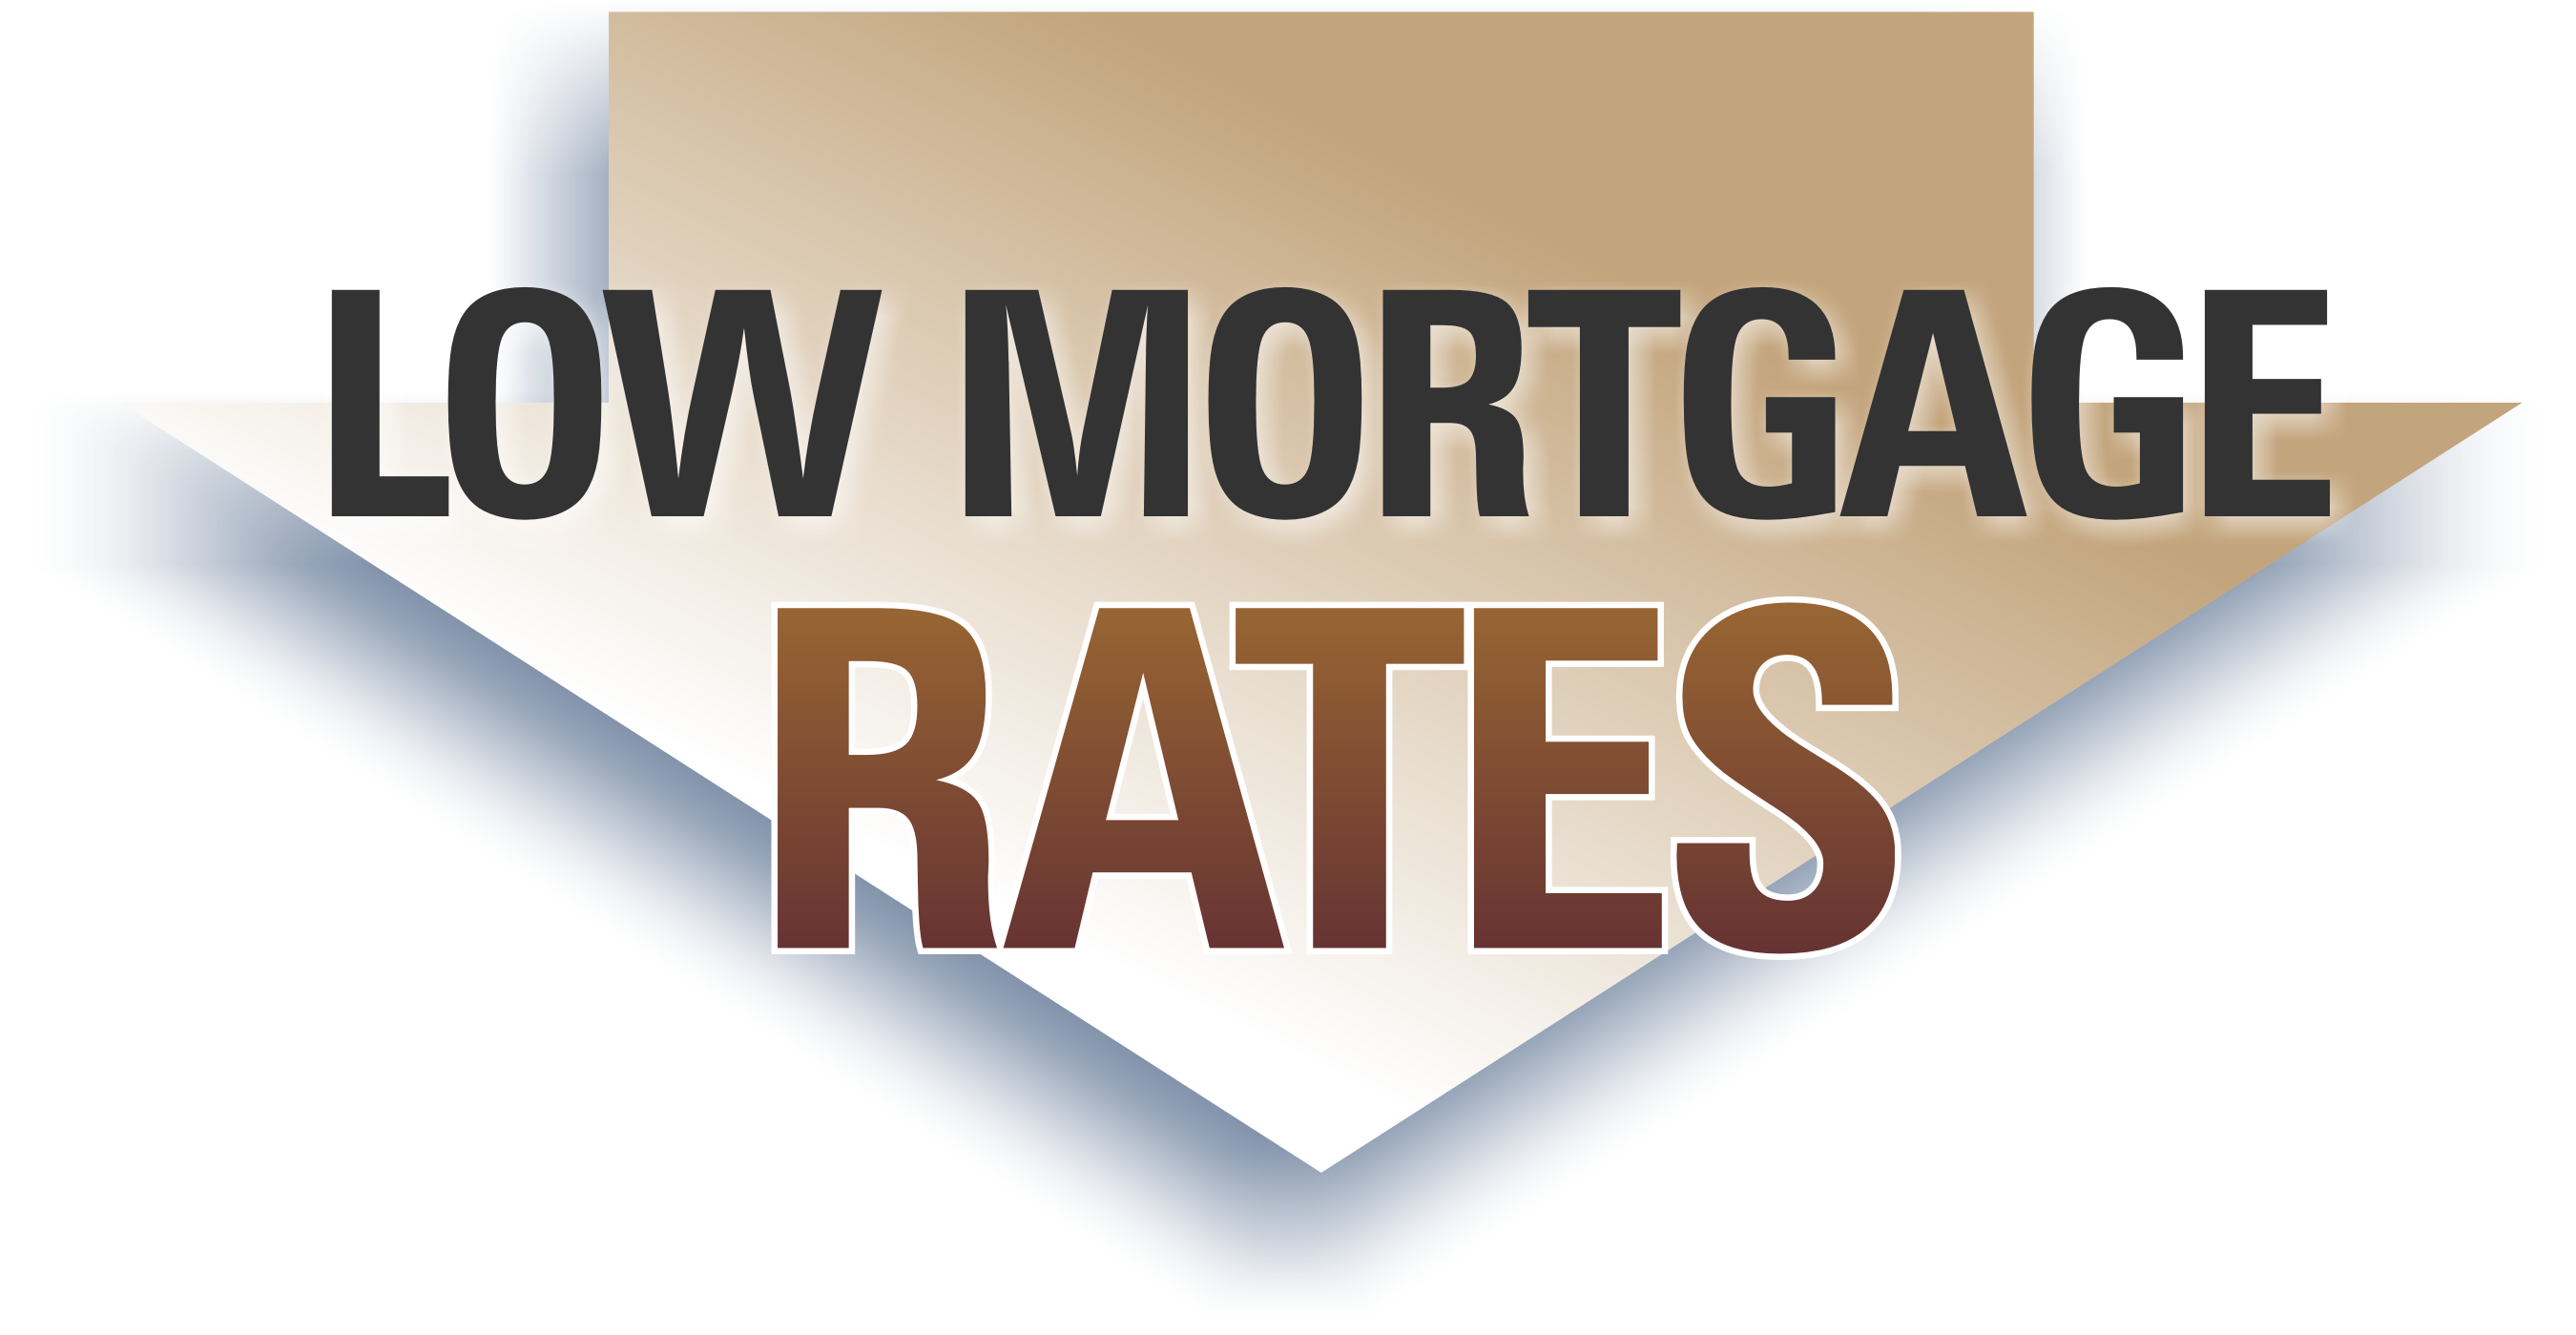 Special 5-Year Fixed Rate for High-Ratio Insured Purchase